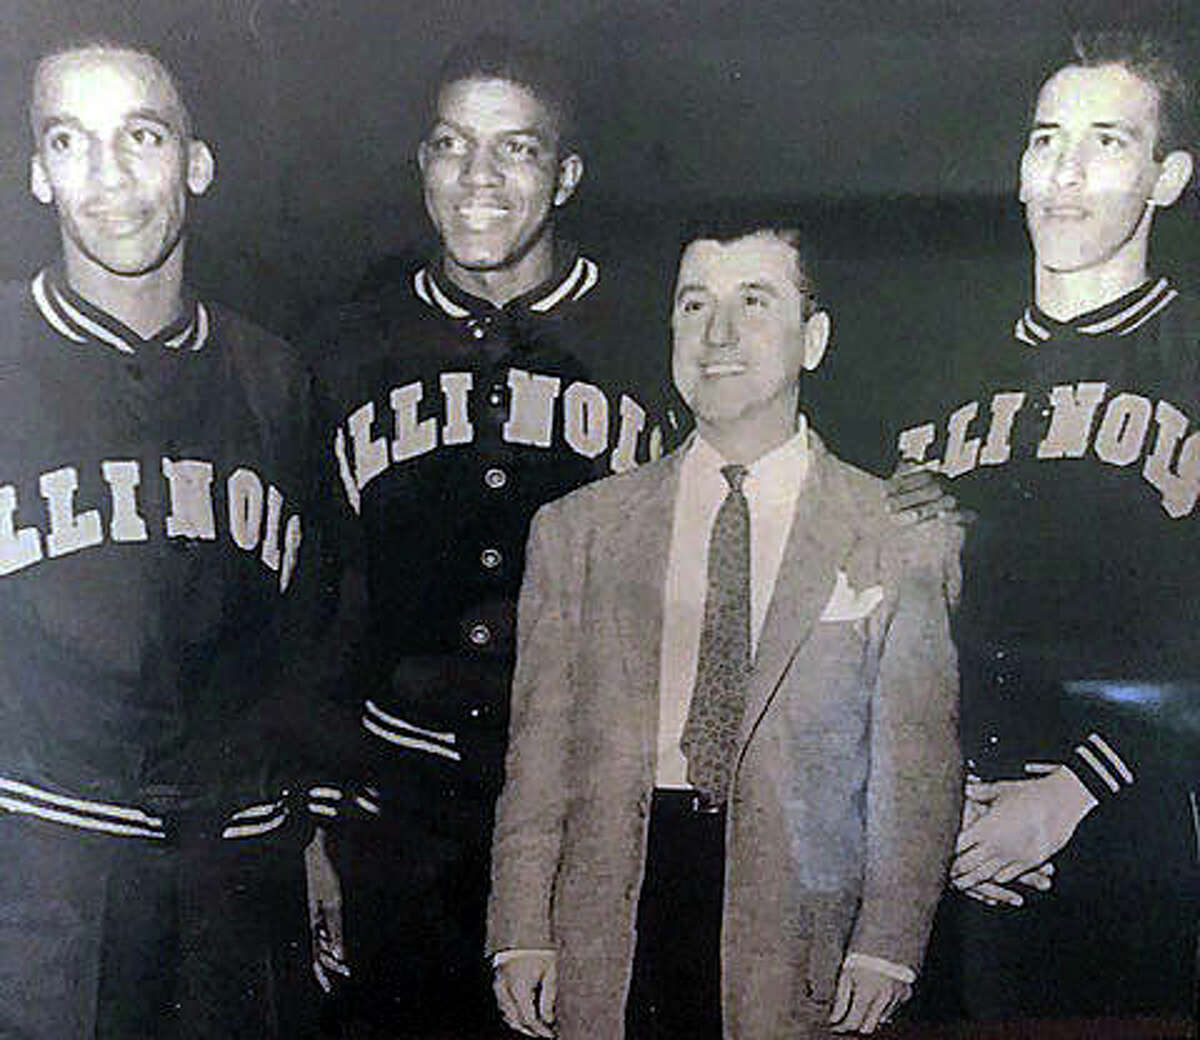 Edwardsville graduate Don Ohl, right, with EHS coach Joe Lucco, second from right, and former EHS teammates Mannie Jackson, left, and Govoner Vaughn during their playing days with the Illini. Ohl, Jackson and Vaughn are all charter members of the Edwardsville High School Athletic Hall of Fame.